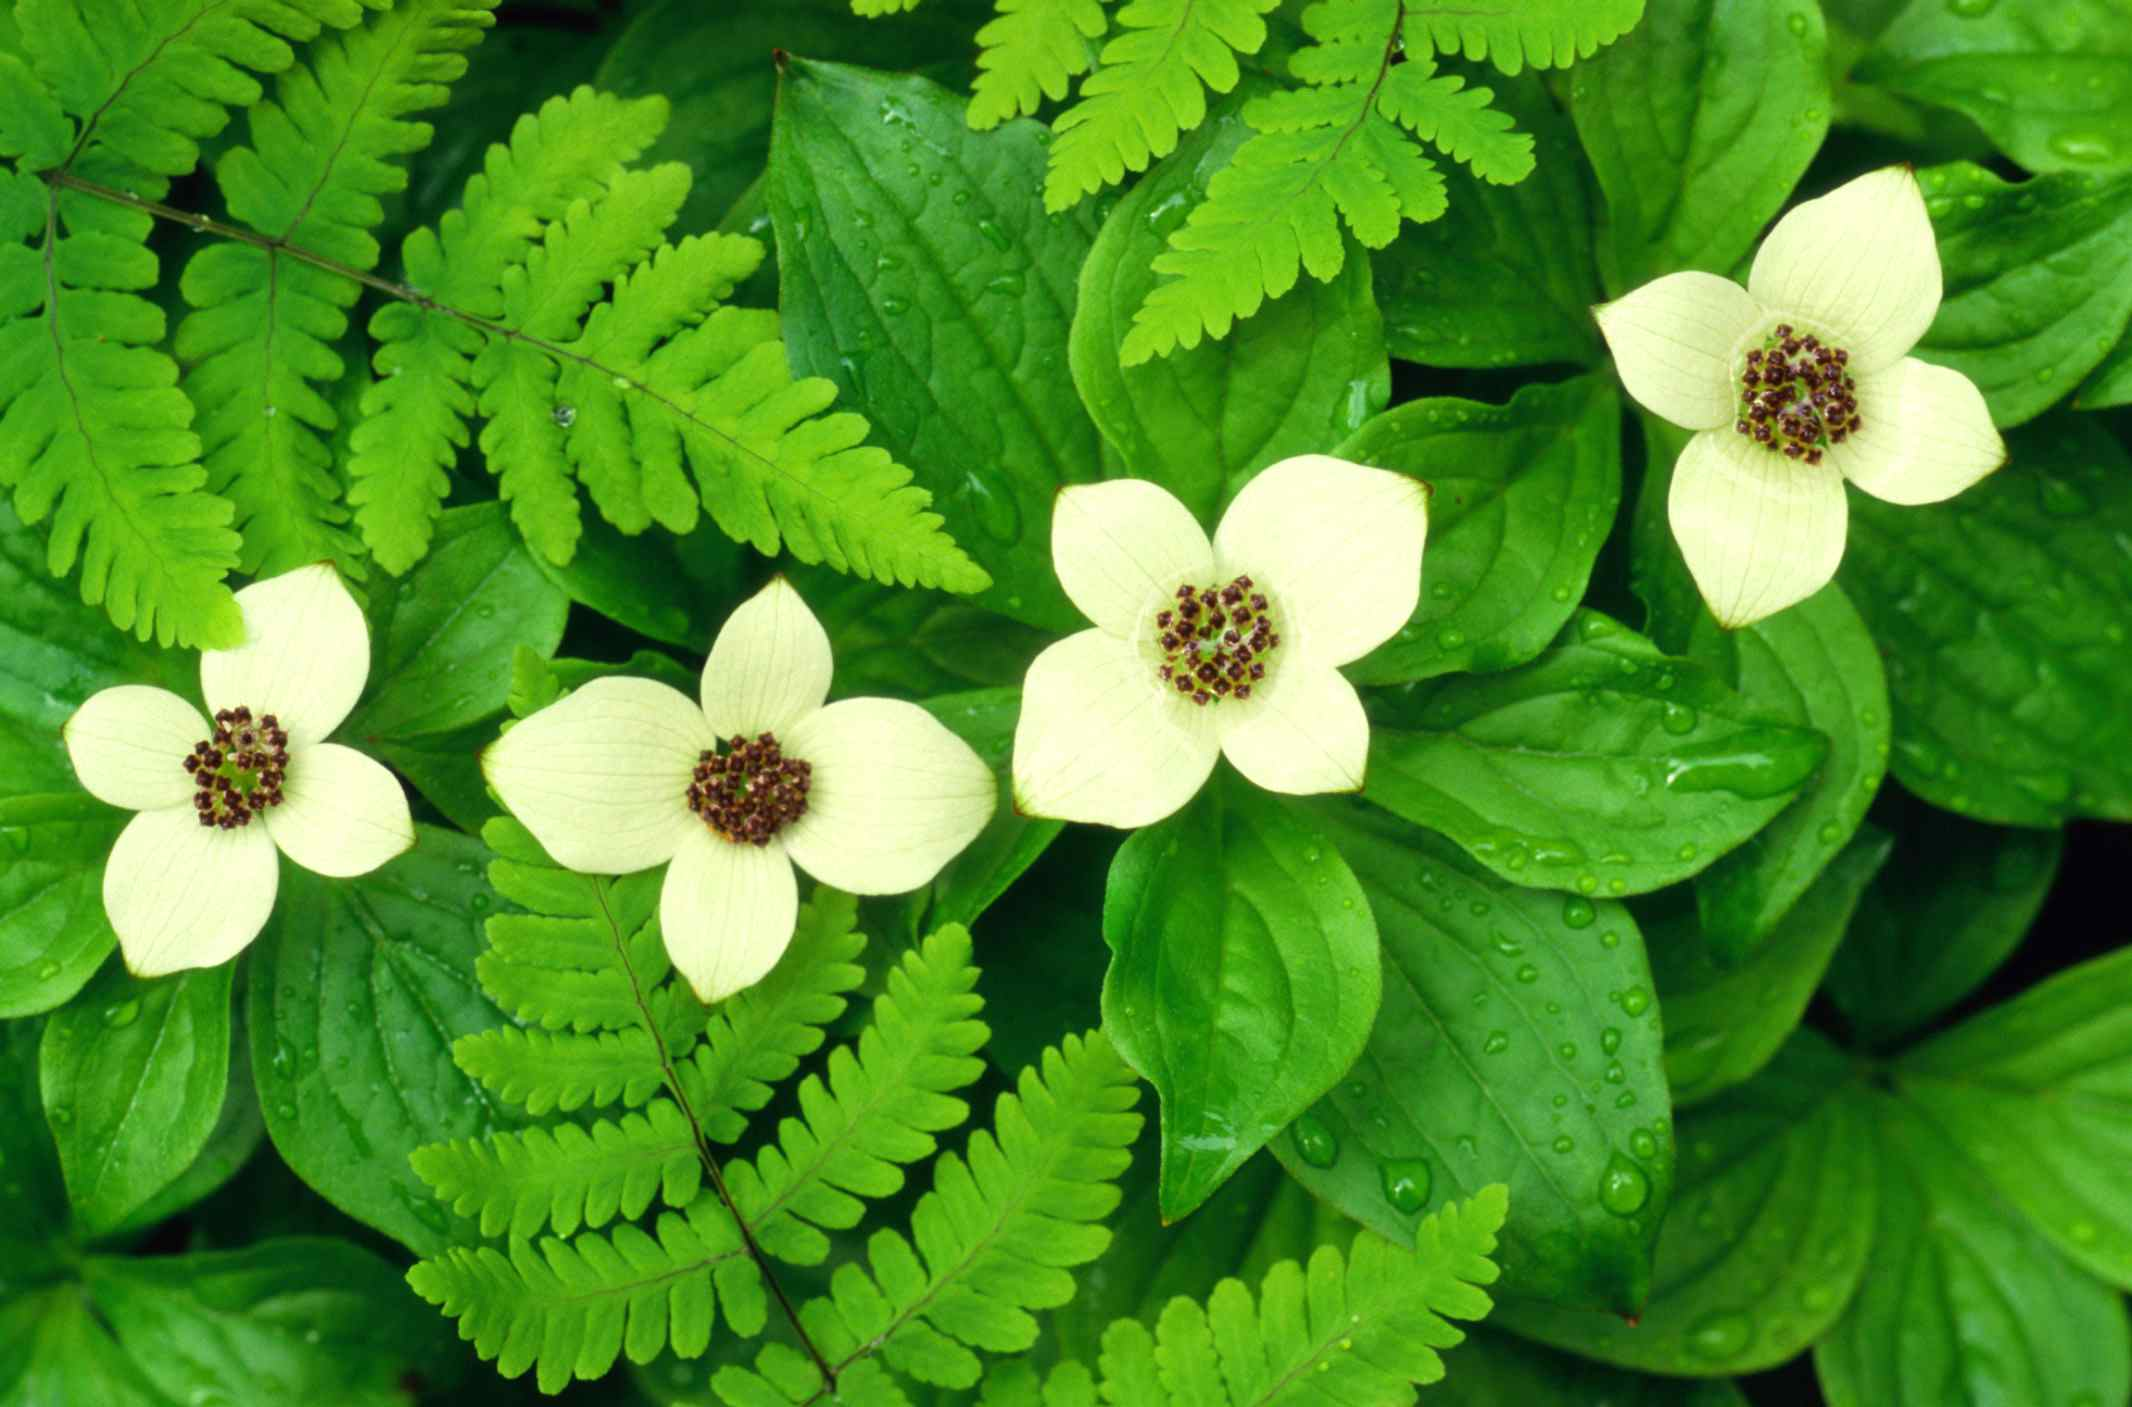 Cornus canadensis, a dogwood ground cover, in bloom.